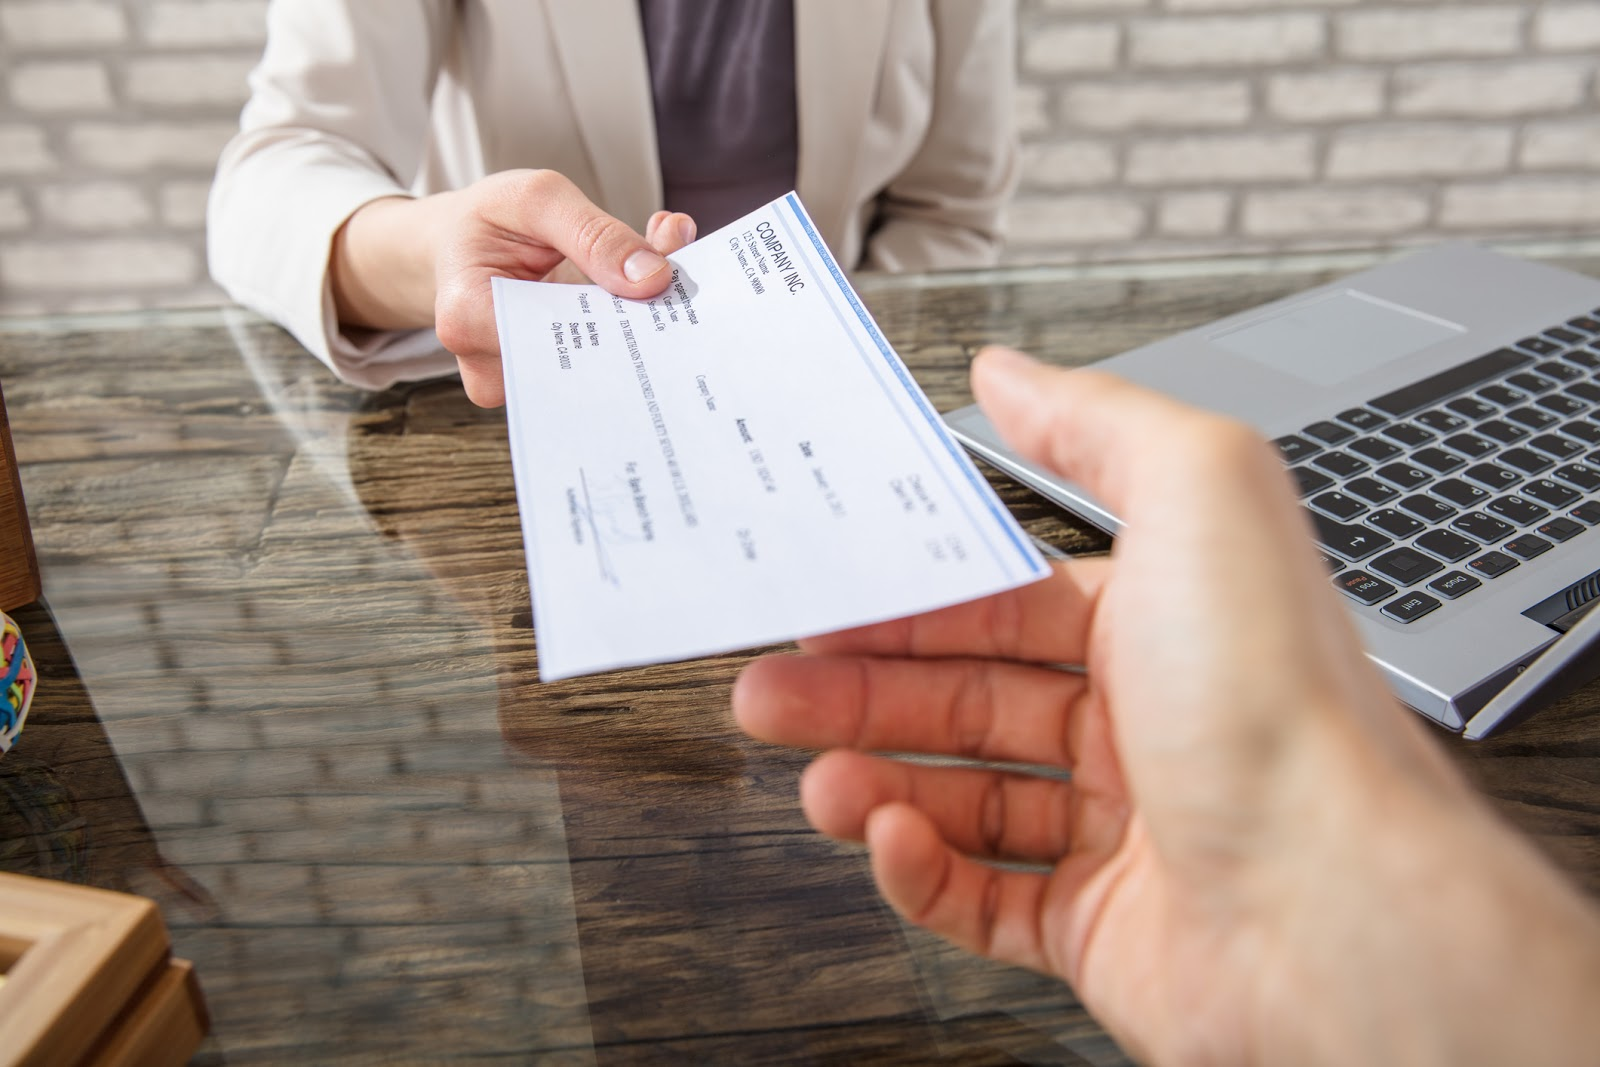 5 Reasons to Never Write a Check Again